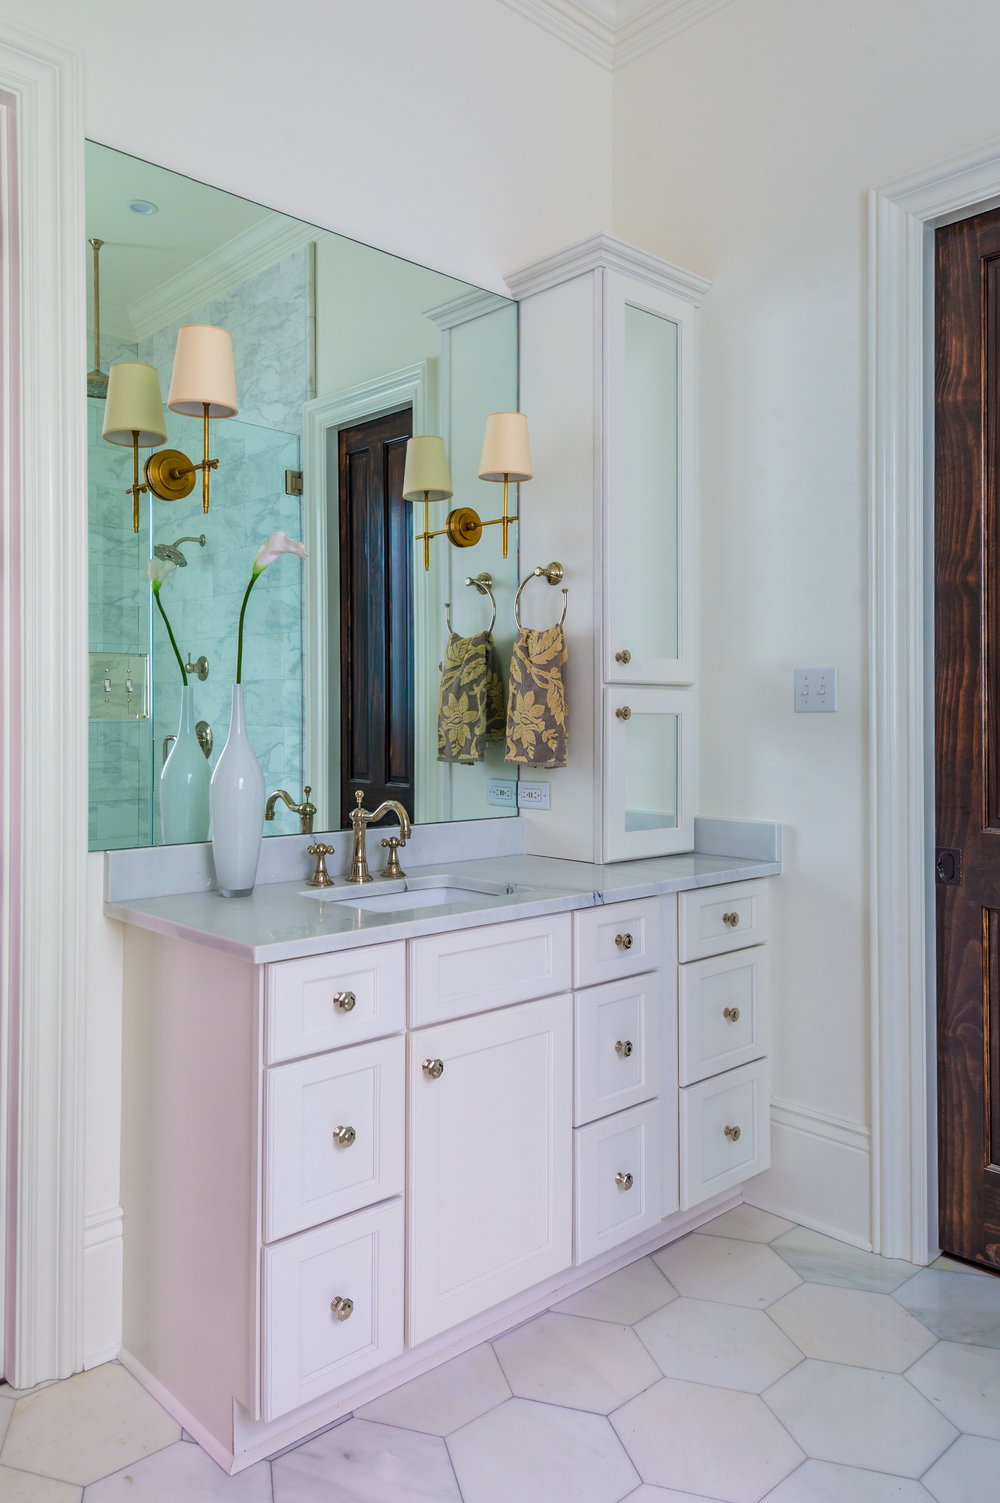 KHB Interiors master bathroom vanity new orleans interior decorator metairie interior designer river ridge lakeview new orleans design new construction new orleans .jpg